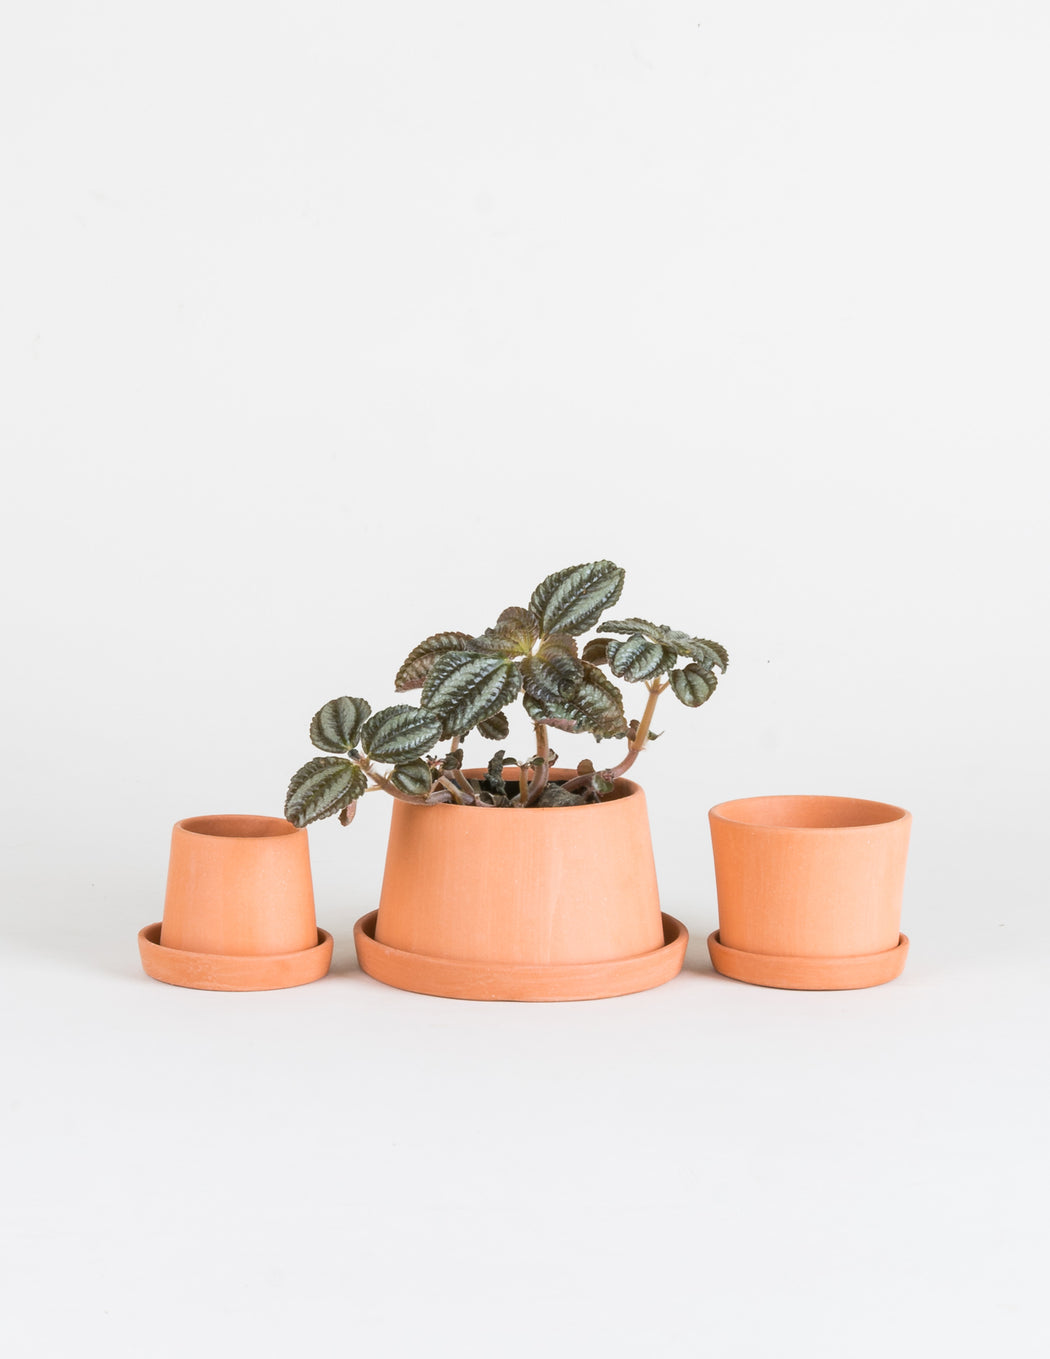 MIchiko Shimada Terracotta Mini Planter Set - Pistils Nursery - handmade unglazed terra cotta